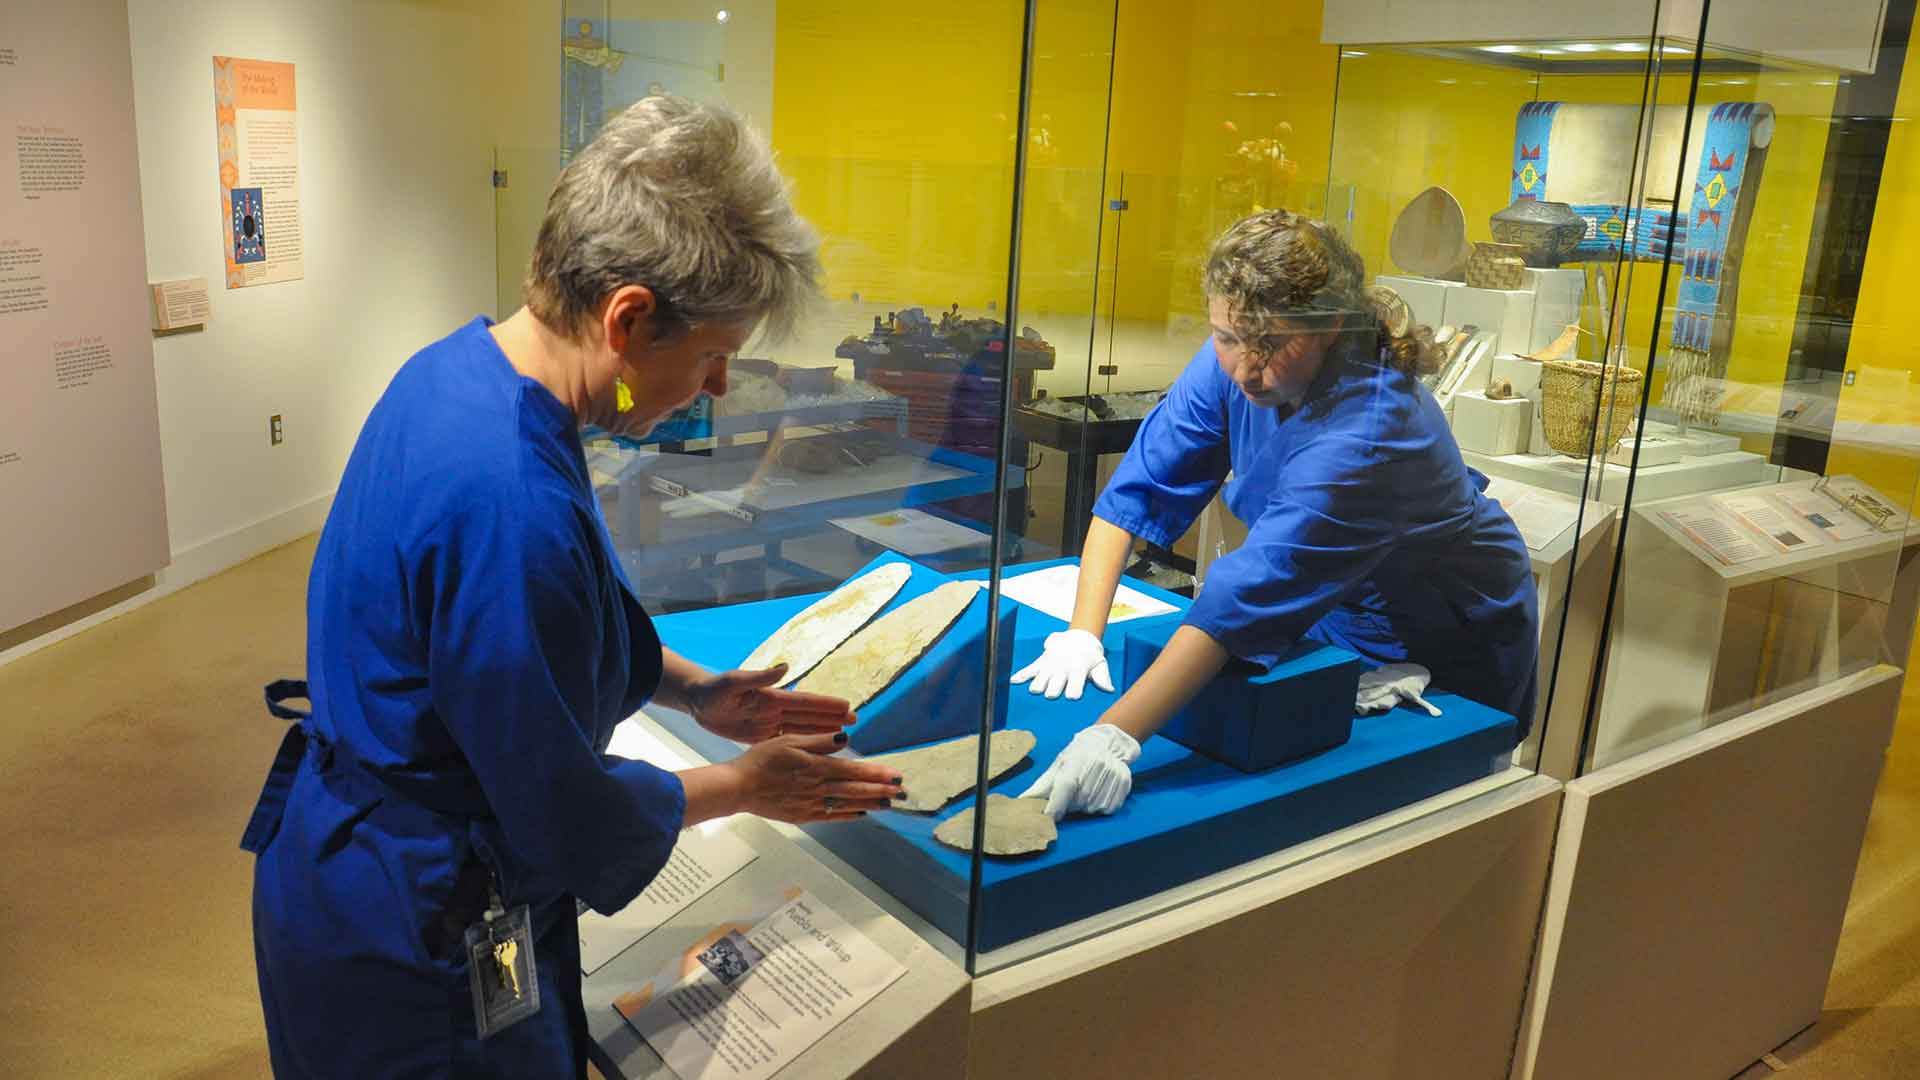 Two staff members arrange objects in the exhibit case in the gallery